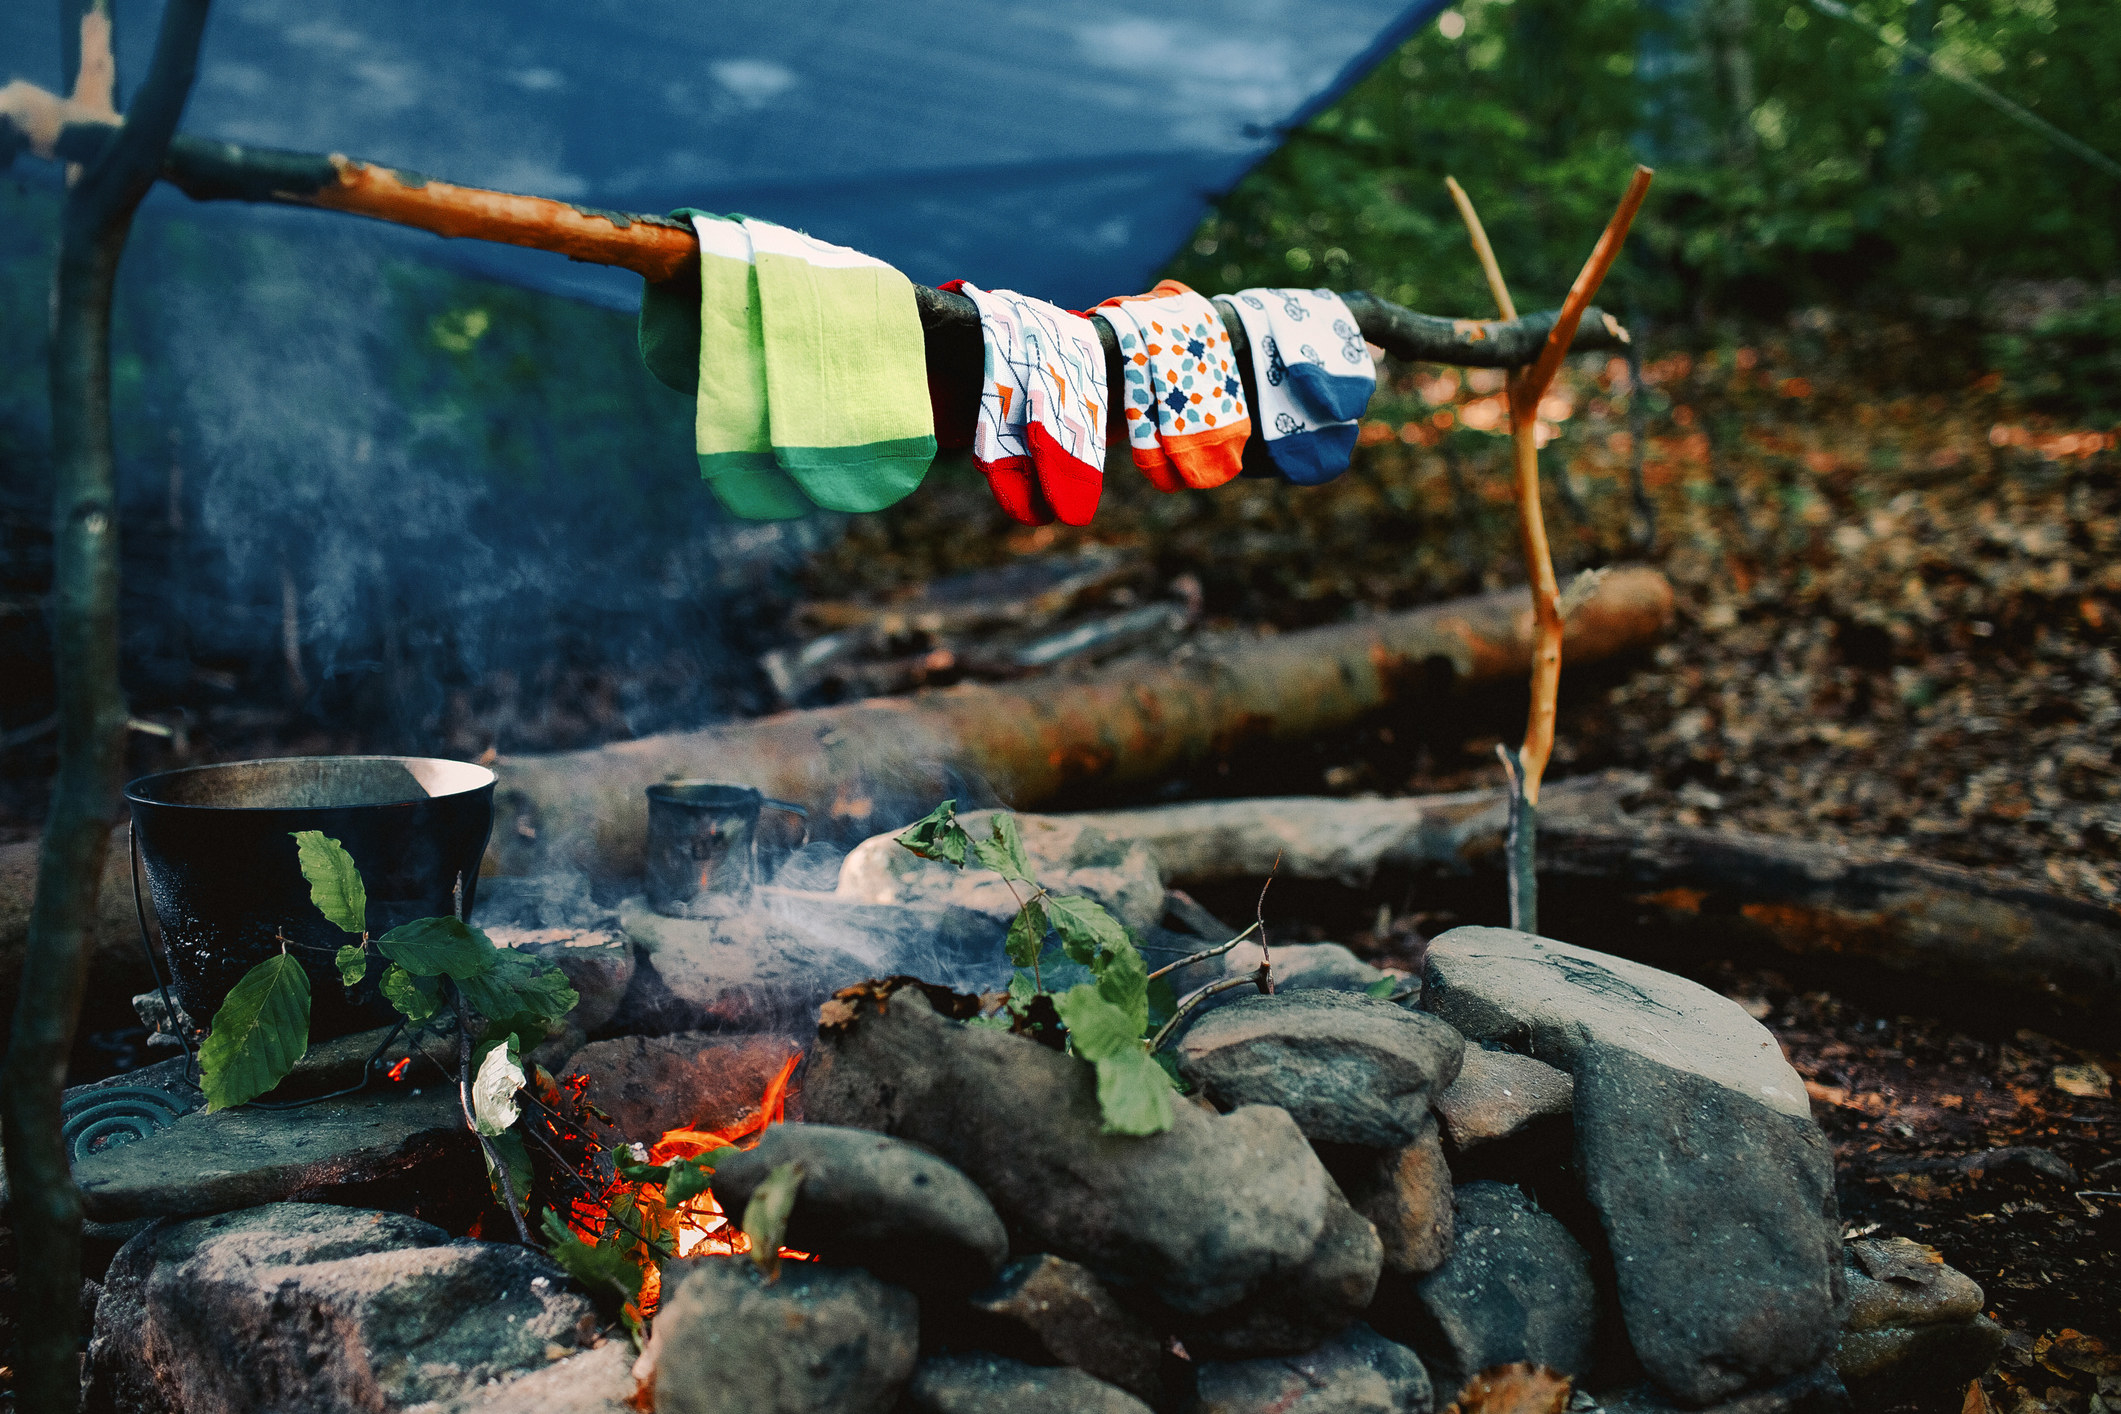 Four pairs of socks drying over a fire.